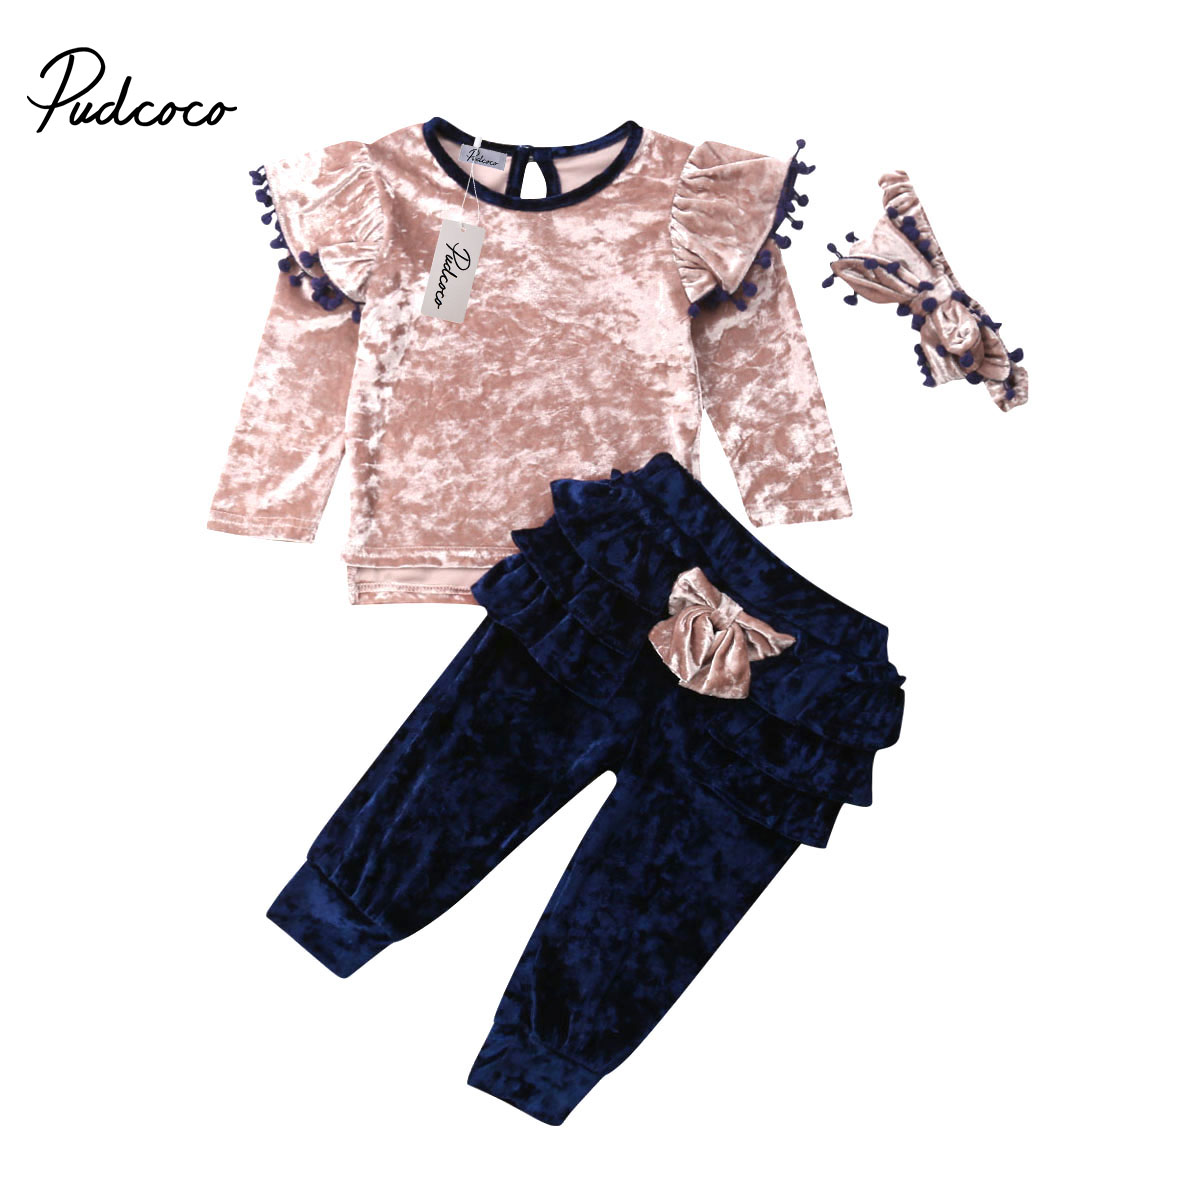 2pc Newborn Toddler Baby Girls Boys Bowknot Bow Tops Pants Outfits Set Clothes